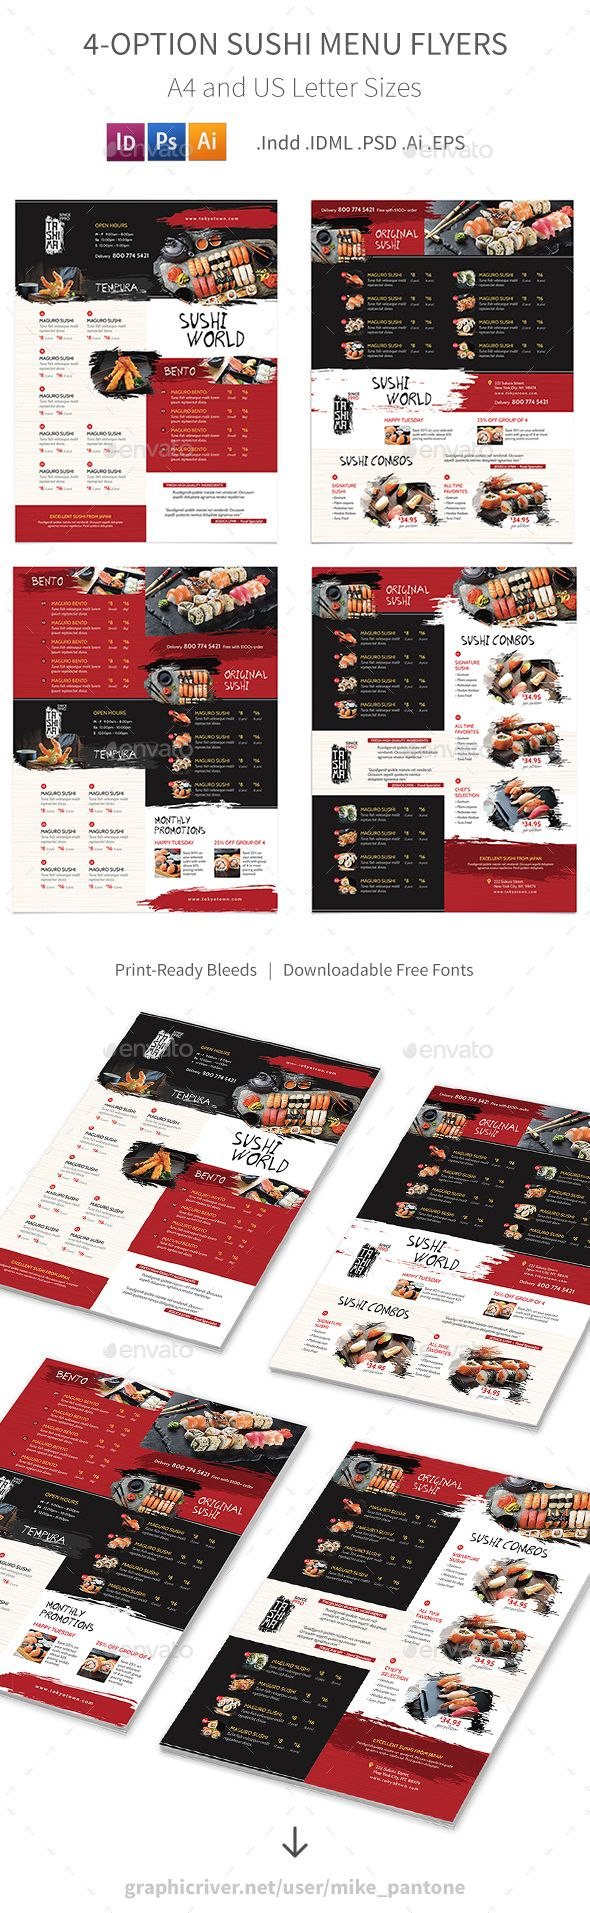 Sushi Restaurant Menu Flyers 3 ¨C 4 Options Clean and modern menu flyers for your sushi, Japanese restaurant business.Features: 8.5